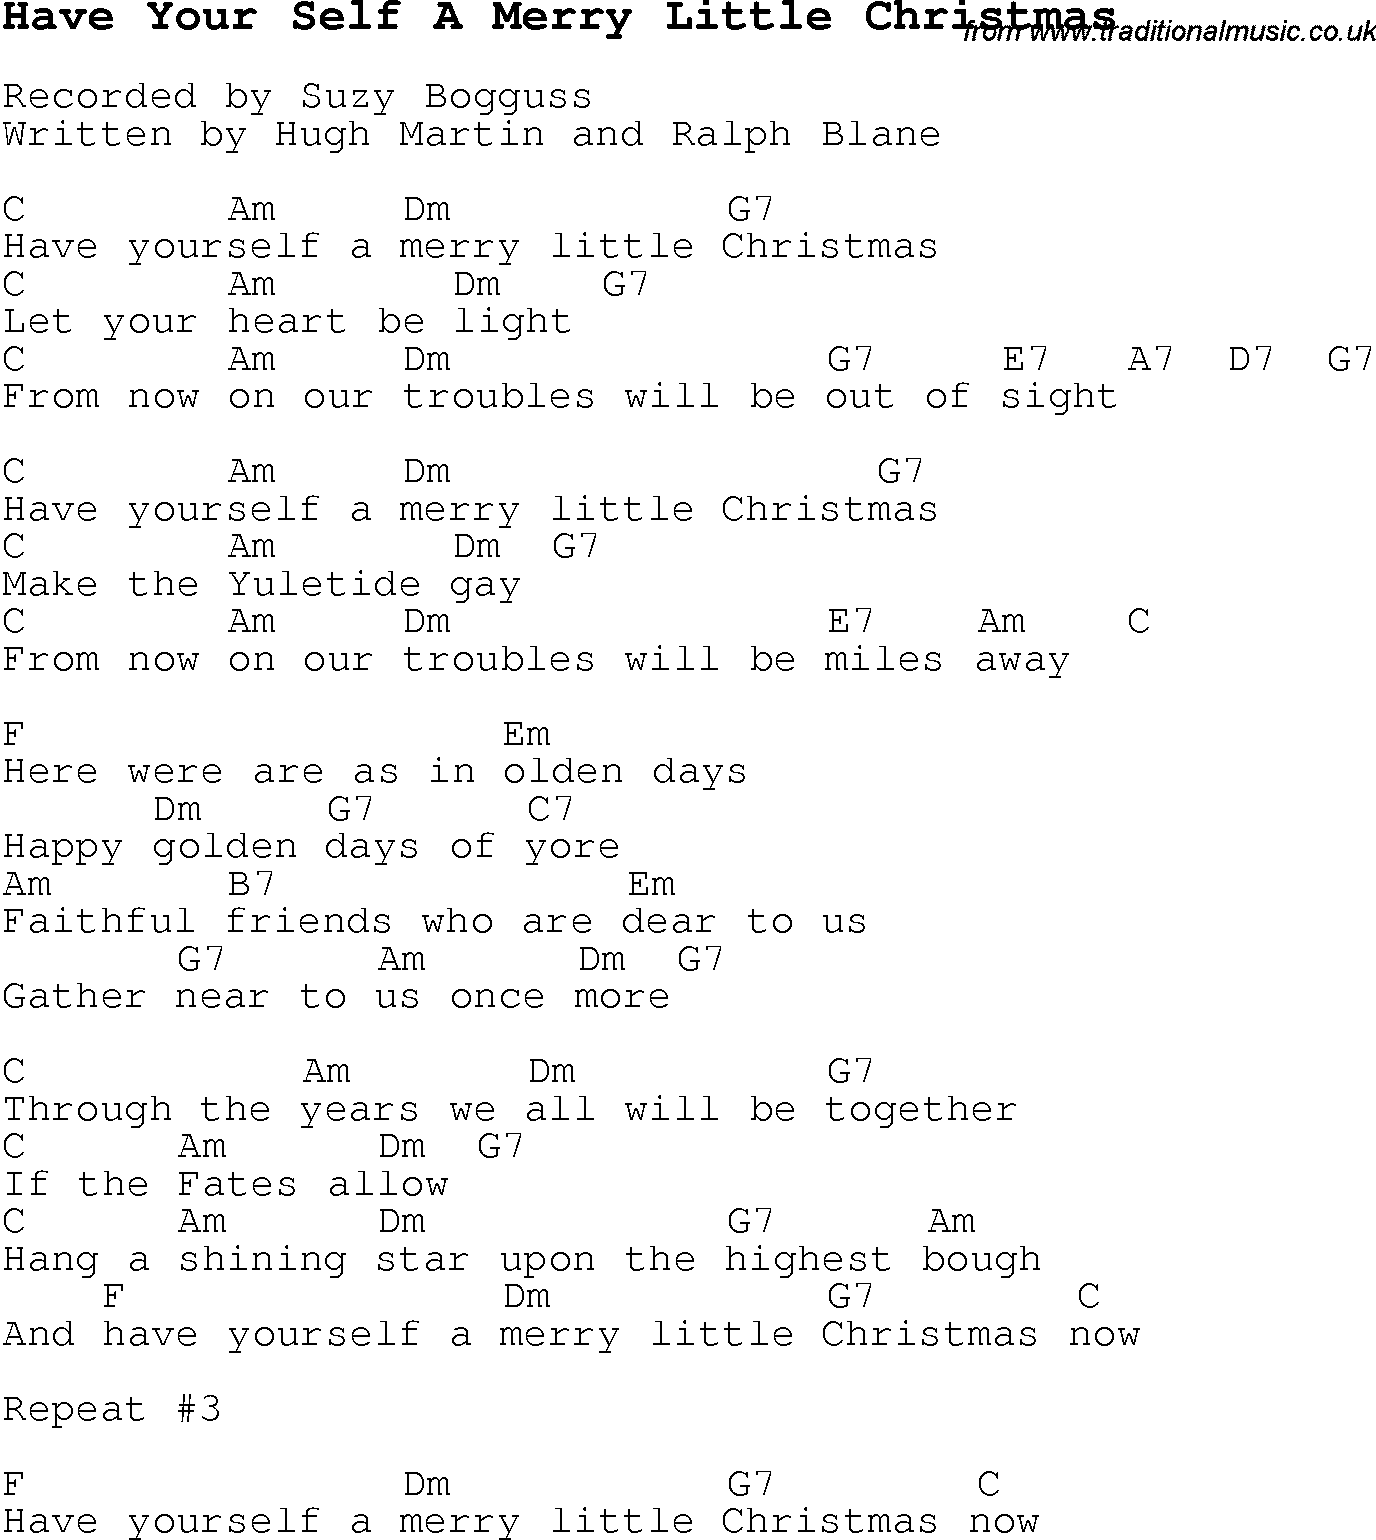 Merry Little Christmas Lyrics.Christmas Carol Song Lyrics With Chords For Have Your Self A